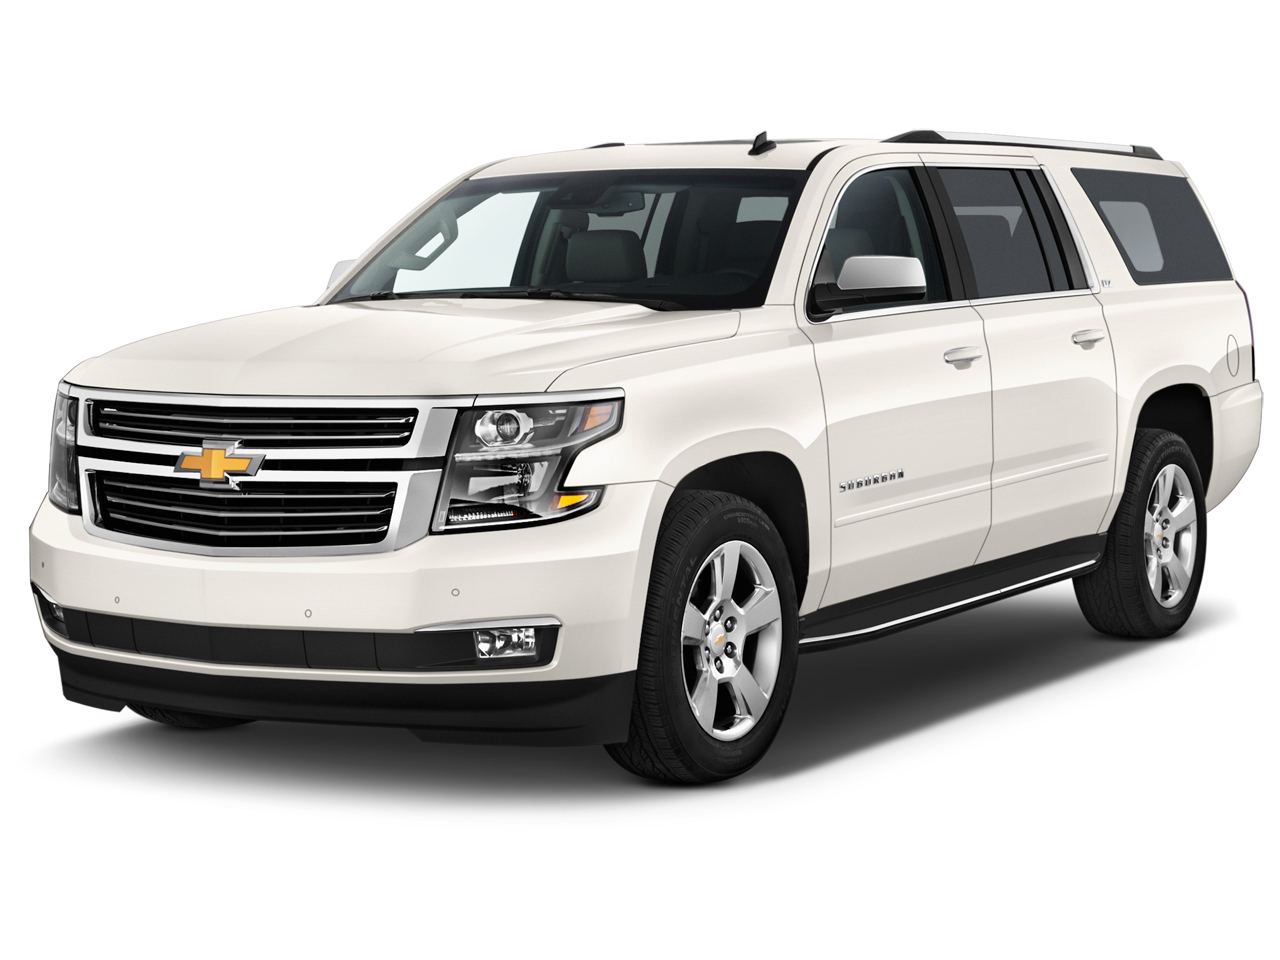 new and used chevrolet suburban chevy prices photos reviews specs the car connection. Black Bedroom Furniture Sets. Home Design Ideas